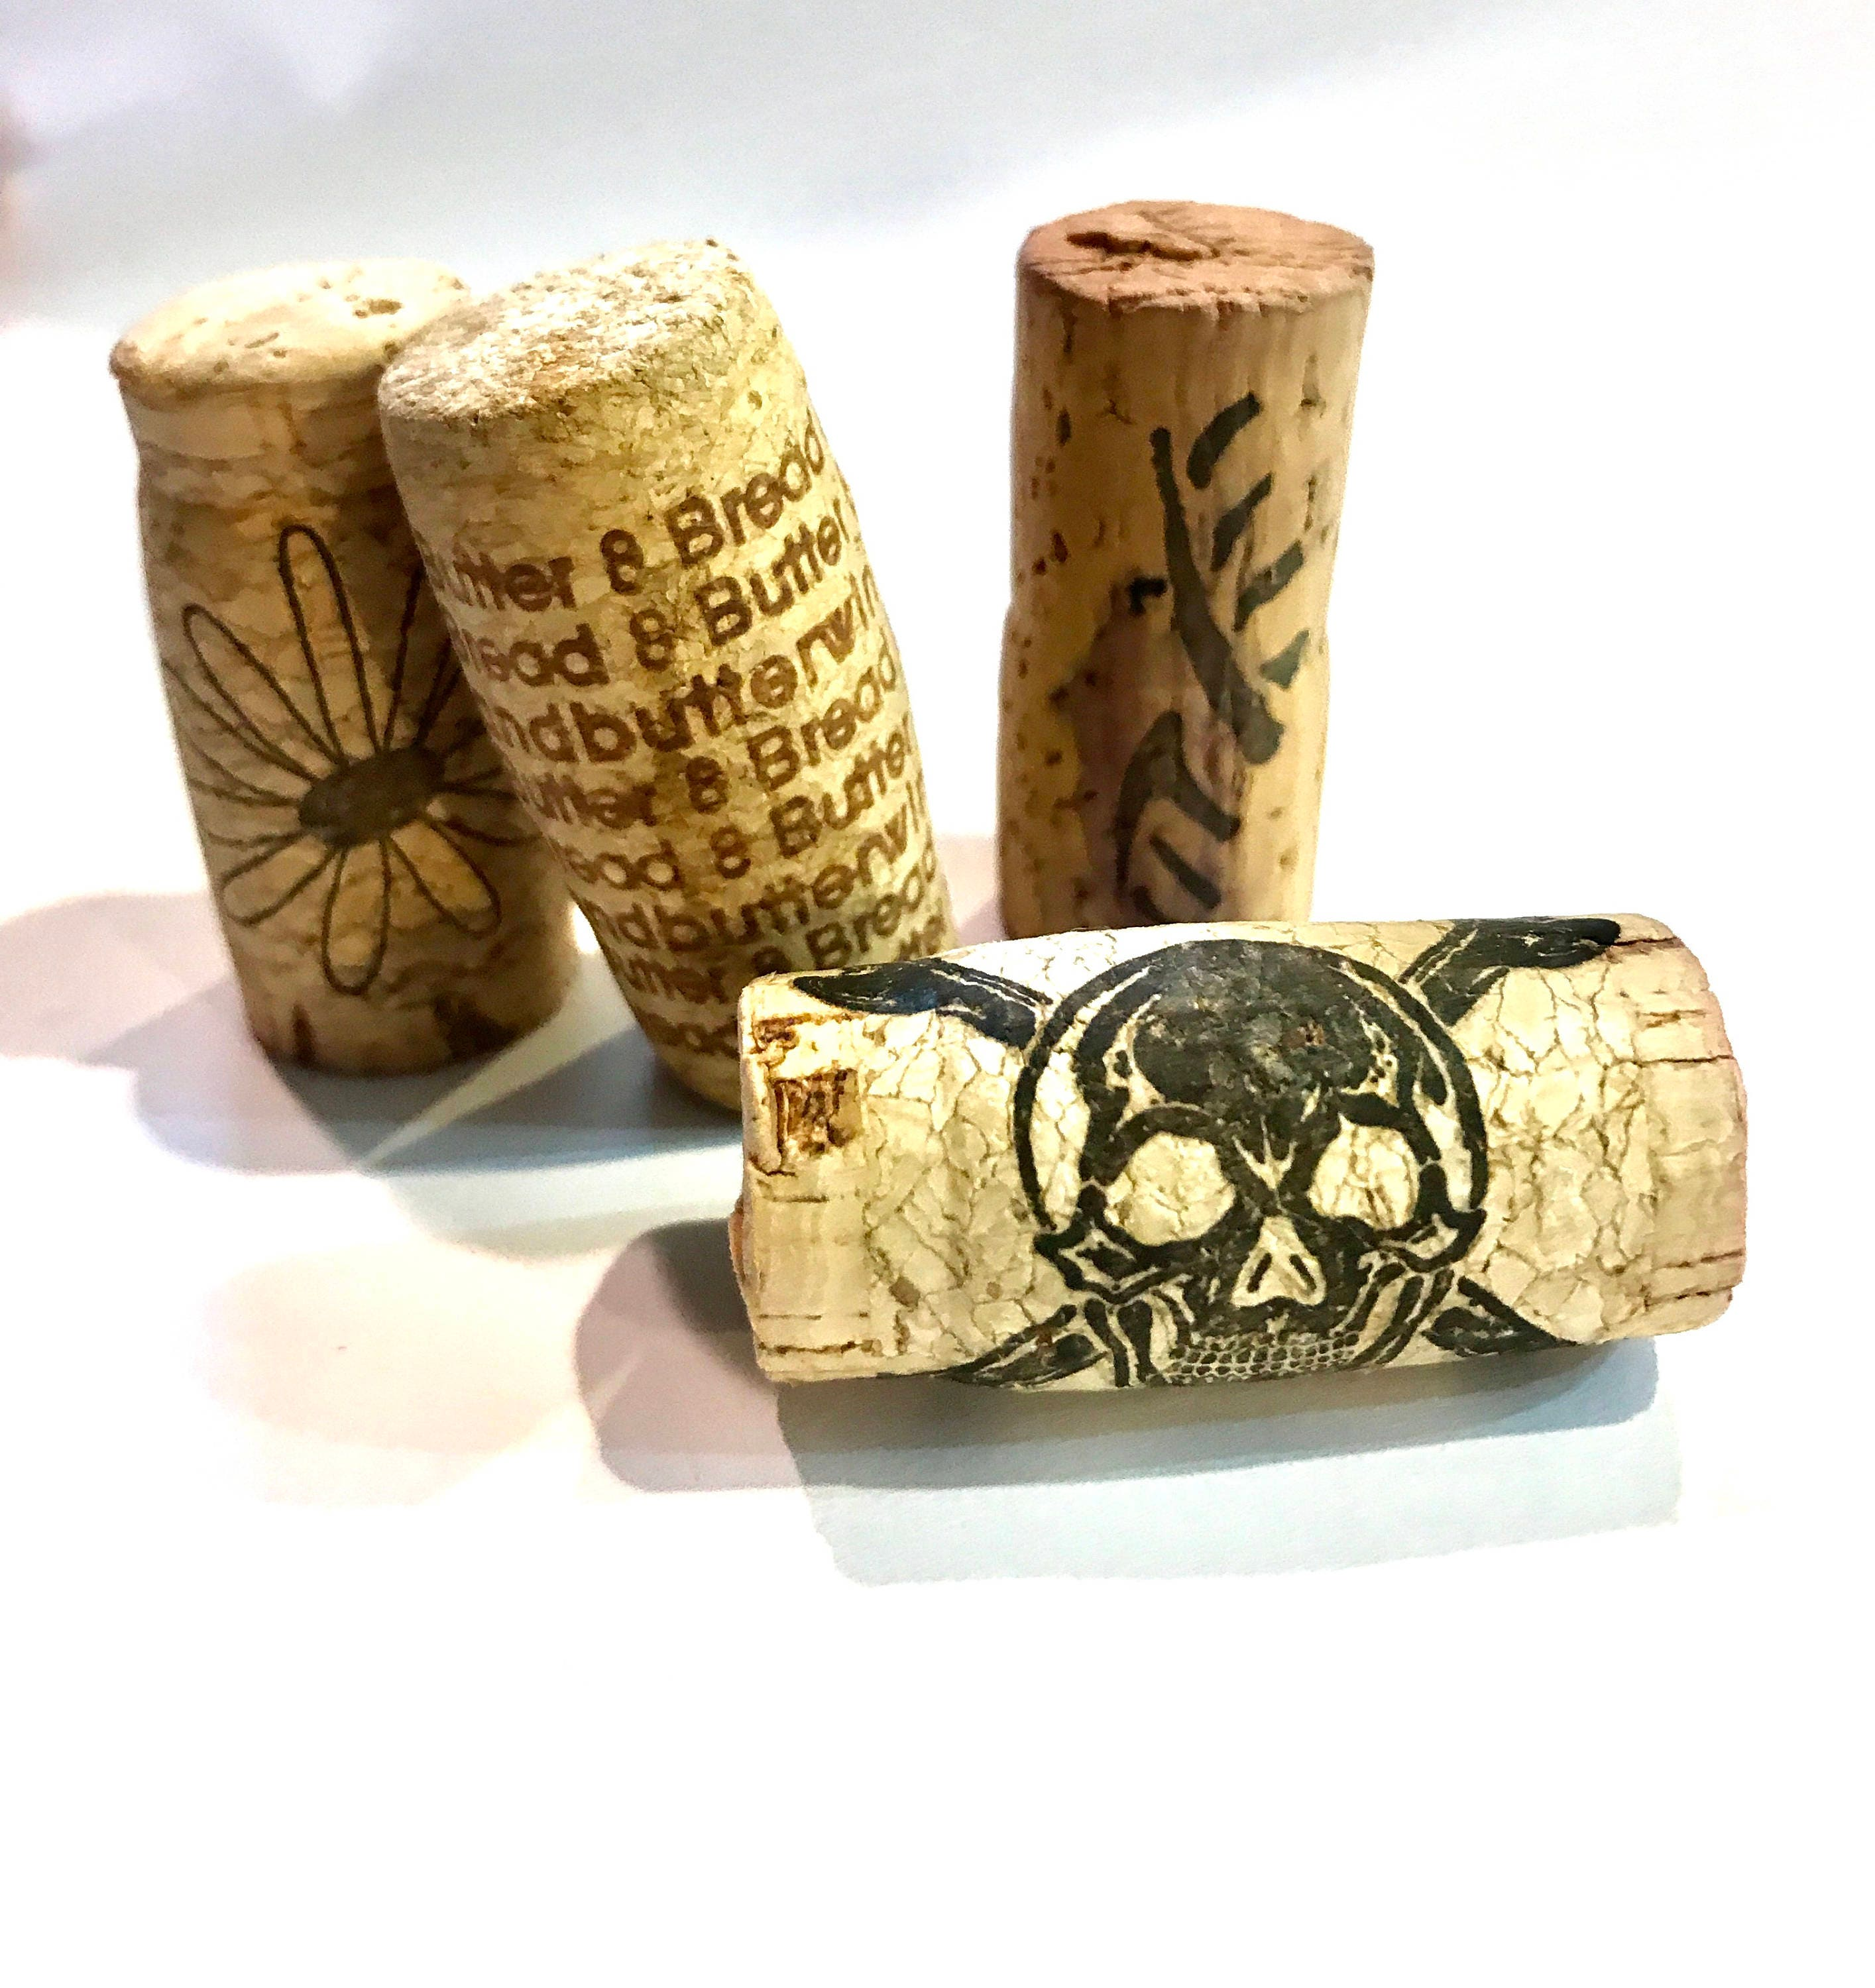 Used wine corks for crafts -  1 50